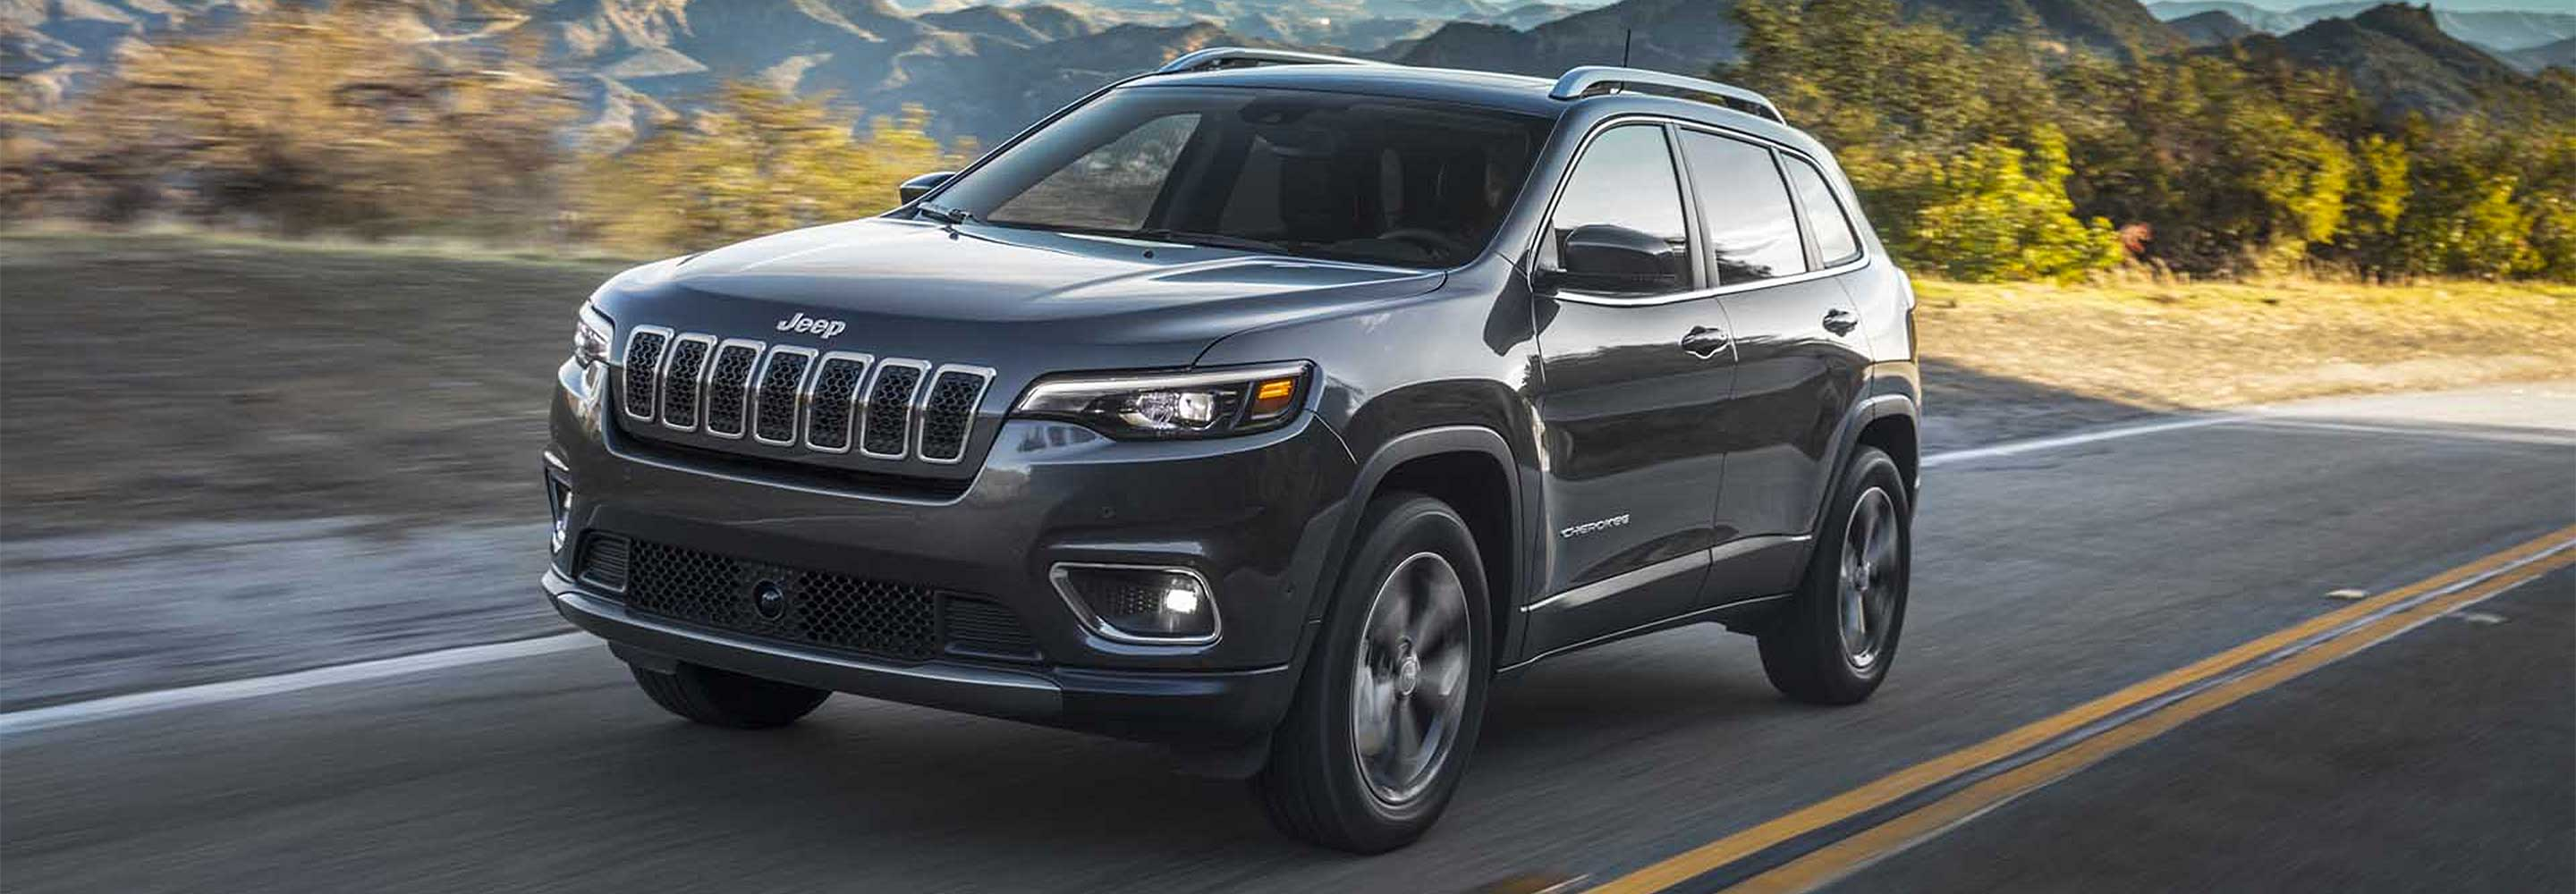 New Cherokee Latitude LUX is Luxury Without the High Price Tag